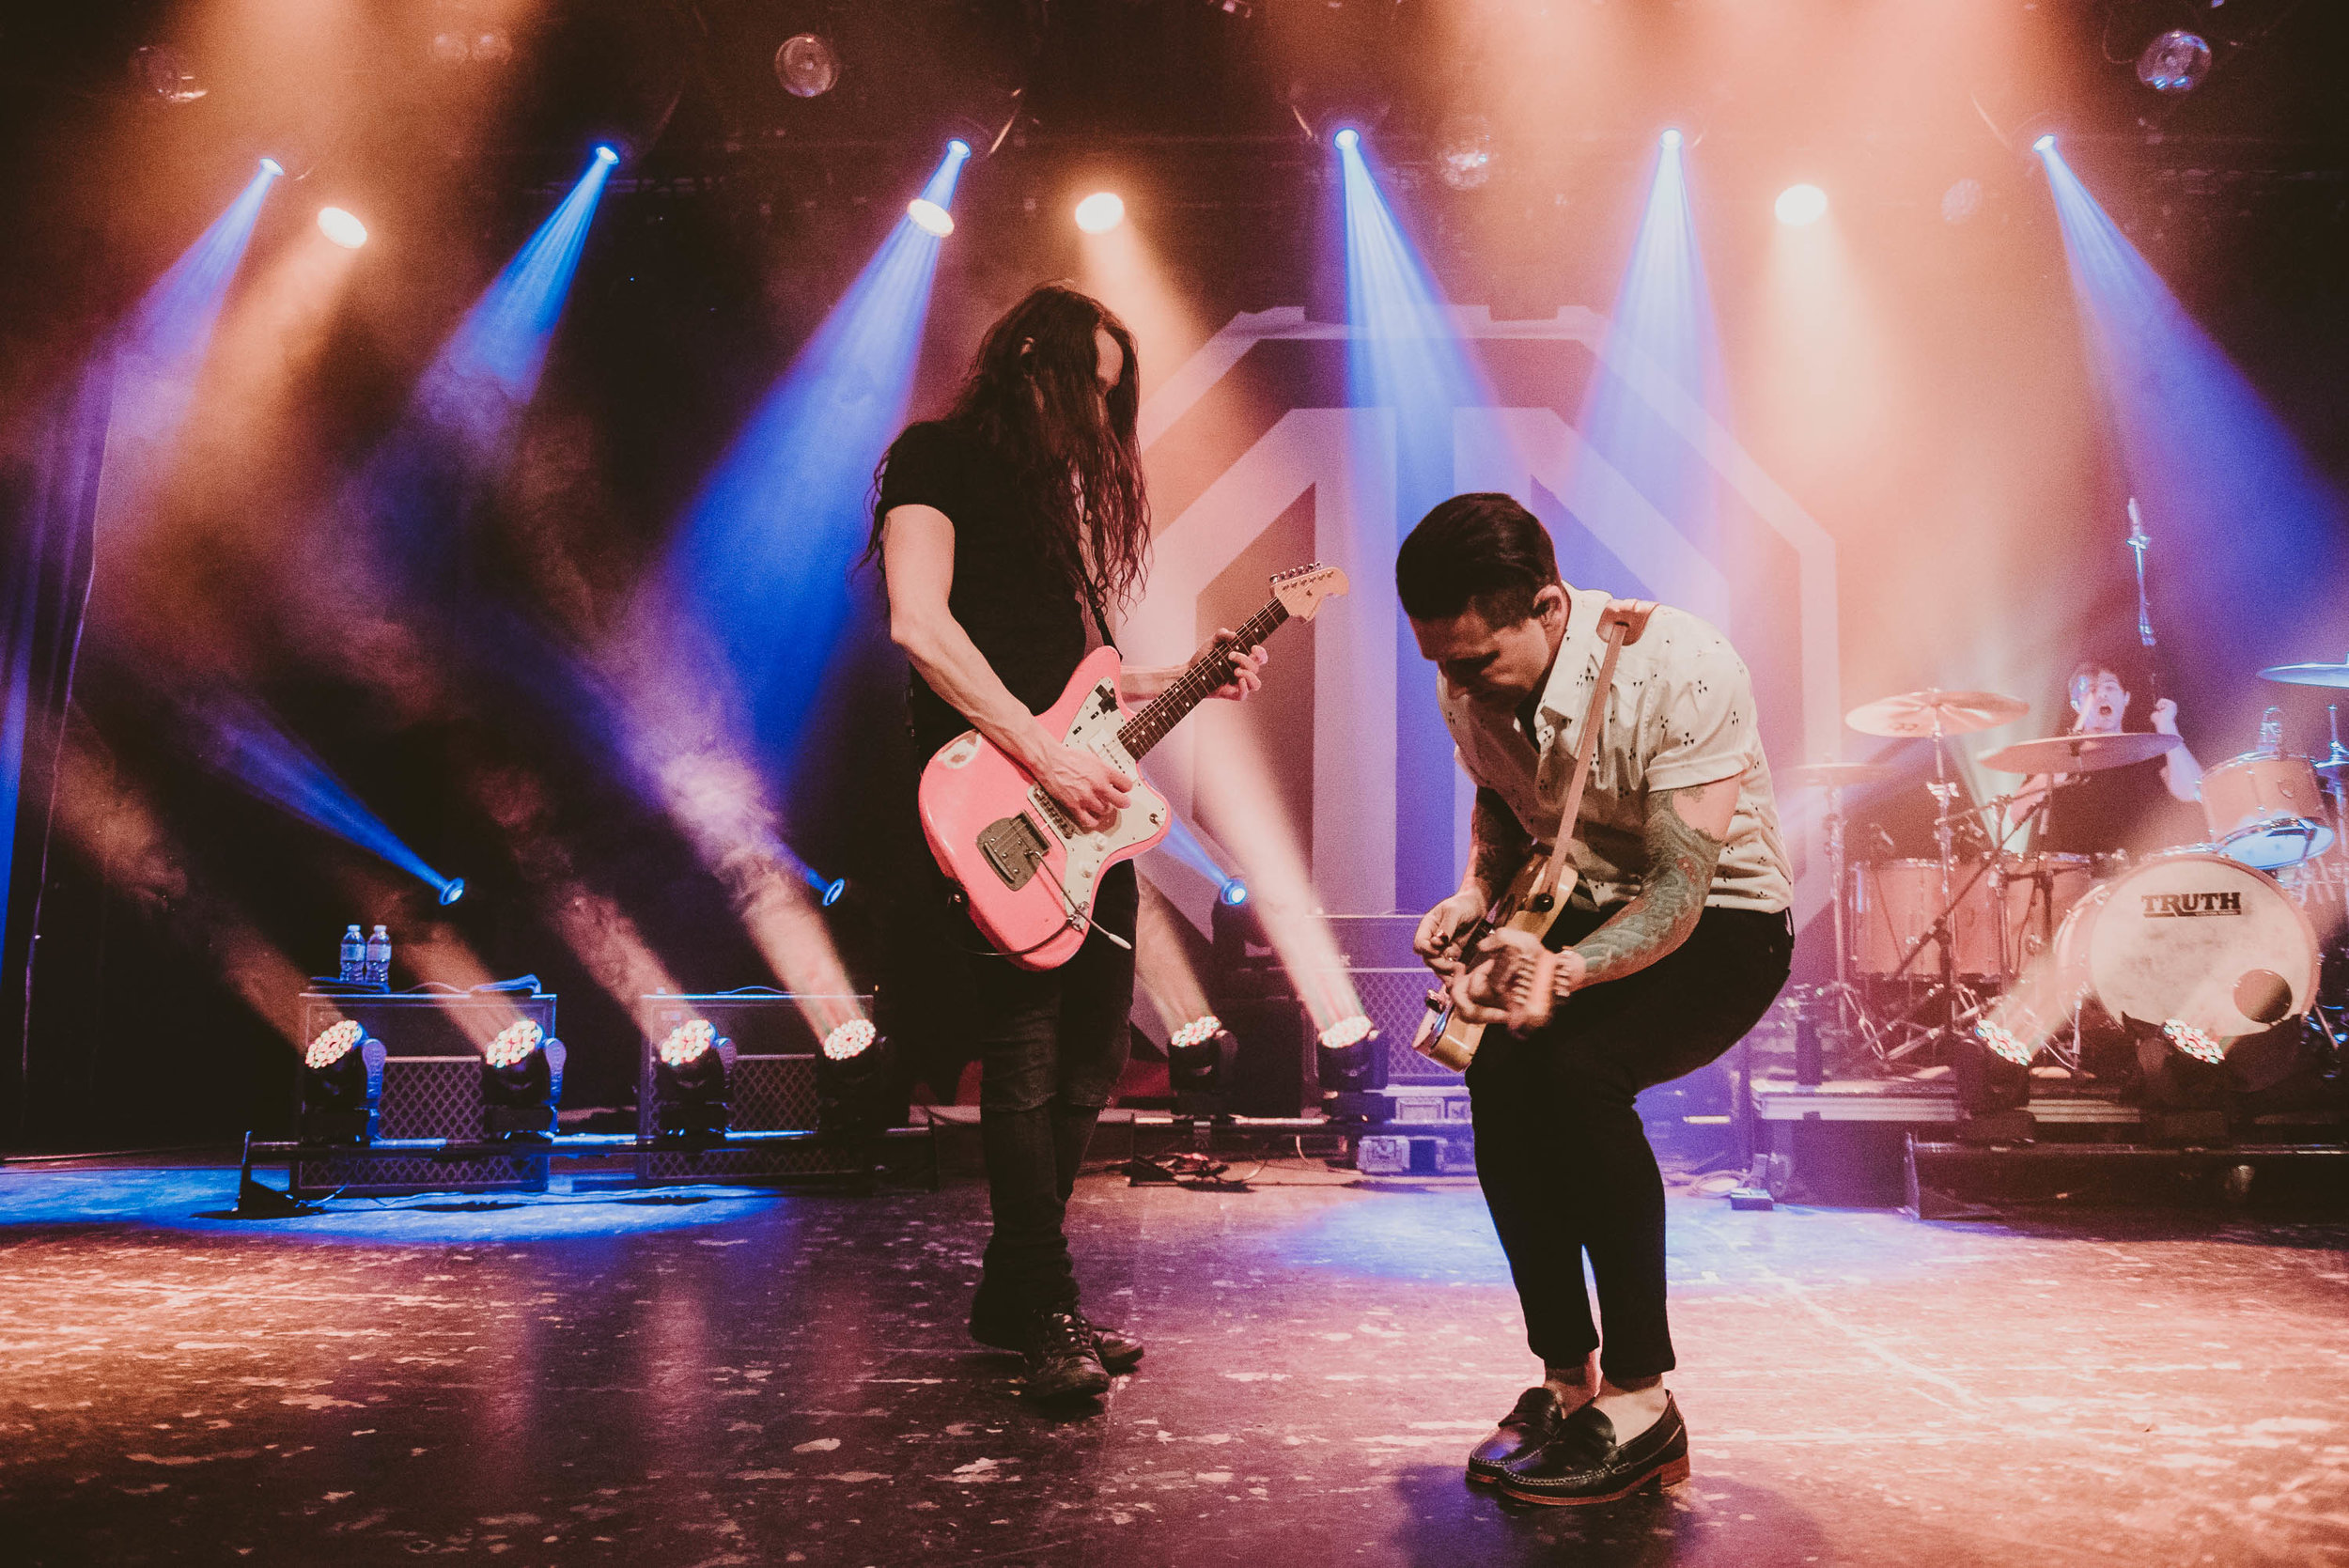 1_Dashboard_Confessional-Commodore_Ballroom-Timothy_Nguyen-20180221 (11 of 19).jpg